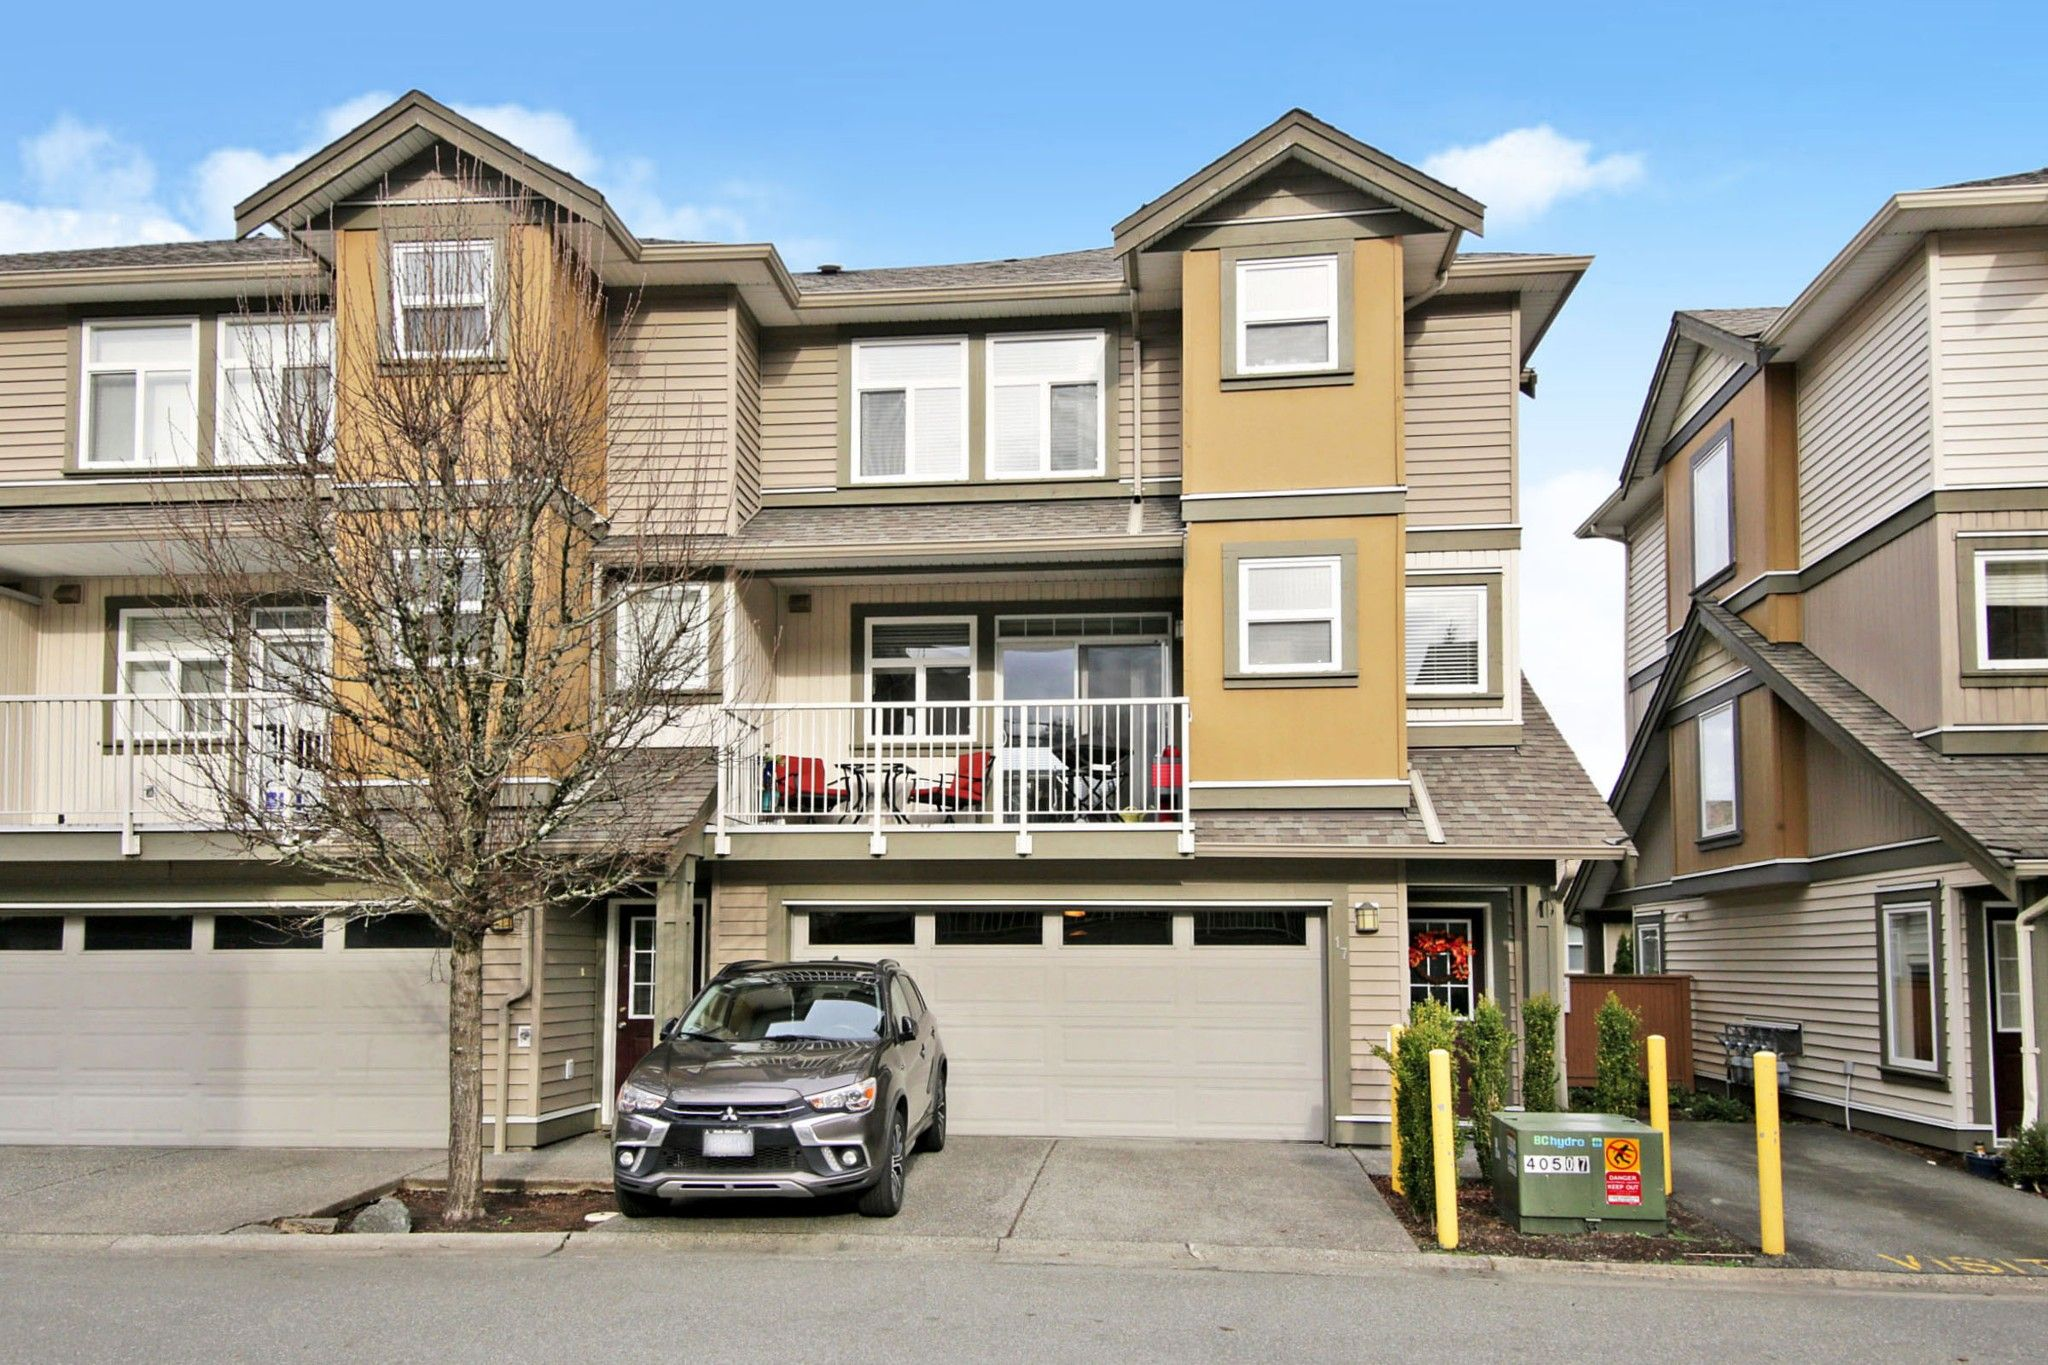 """Main Photo: 17 5623 TESKEY Way in Chilliwack: Promontory Townhouse for sale in """"Wisteria Heights"""" (Sardis)  : MLS®# R2531032"""